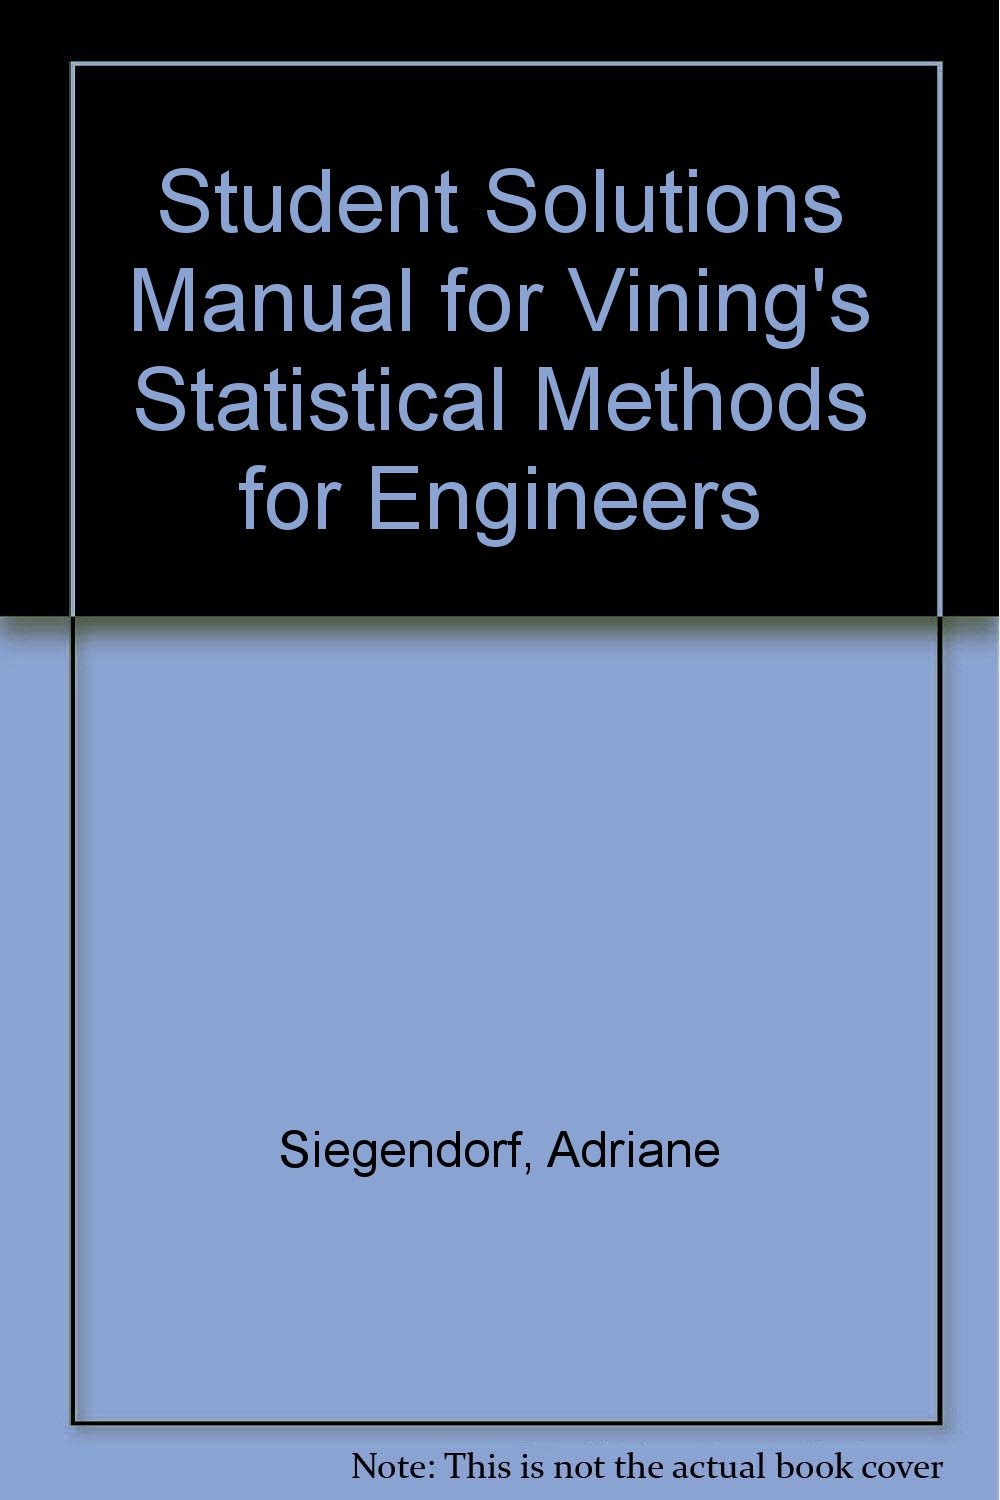 Student Solutions Manual for Vining's Statistical Methods for Engineers: G.  Geoffrey Vining: 9780534237073: Amazon.com: Books